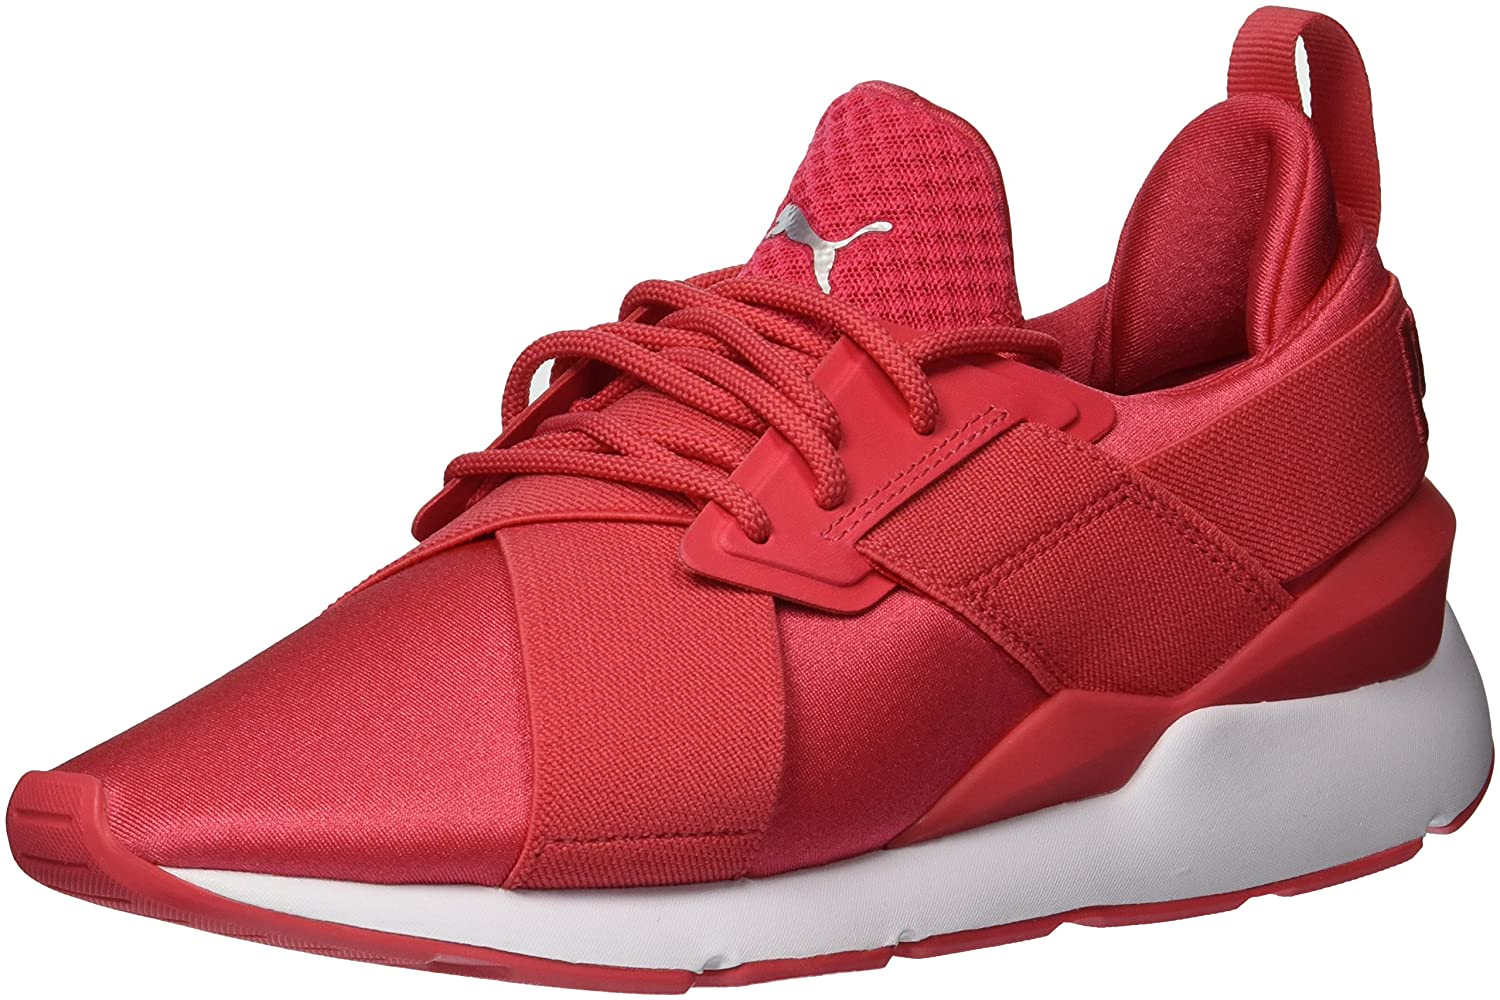 Puma Femmes Muse Satin EP EP Chaussures Muse Paradise Pink-puma 19997 White 5f7d782 - reprogrammed.space